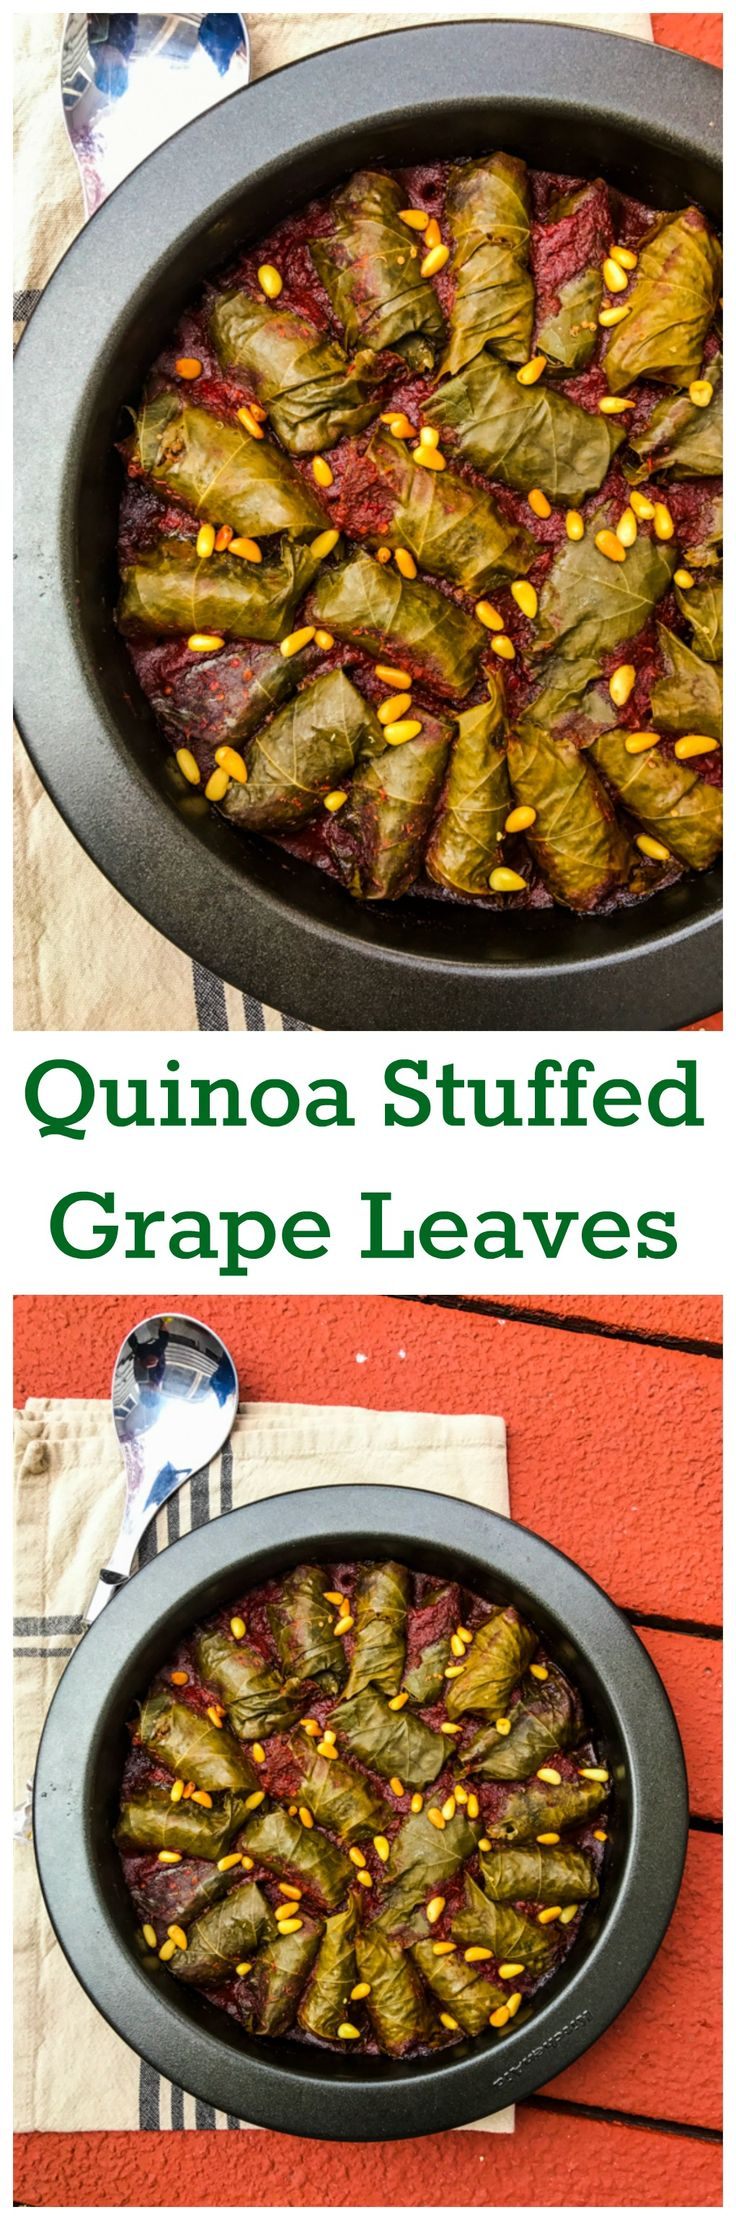 Not Just For Passover Quinoa Stuffed Grape Leaves In Red Wine Sauce